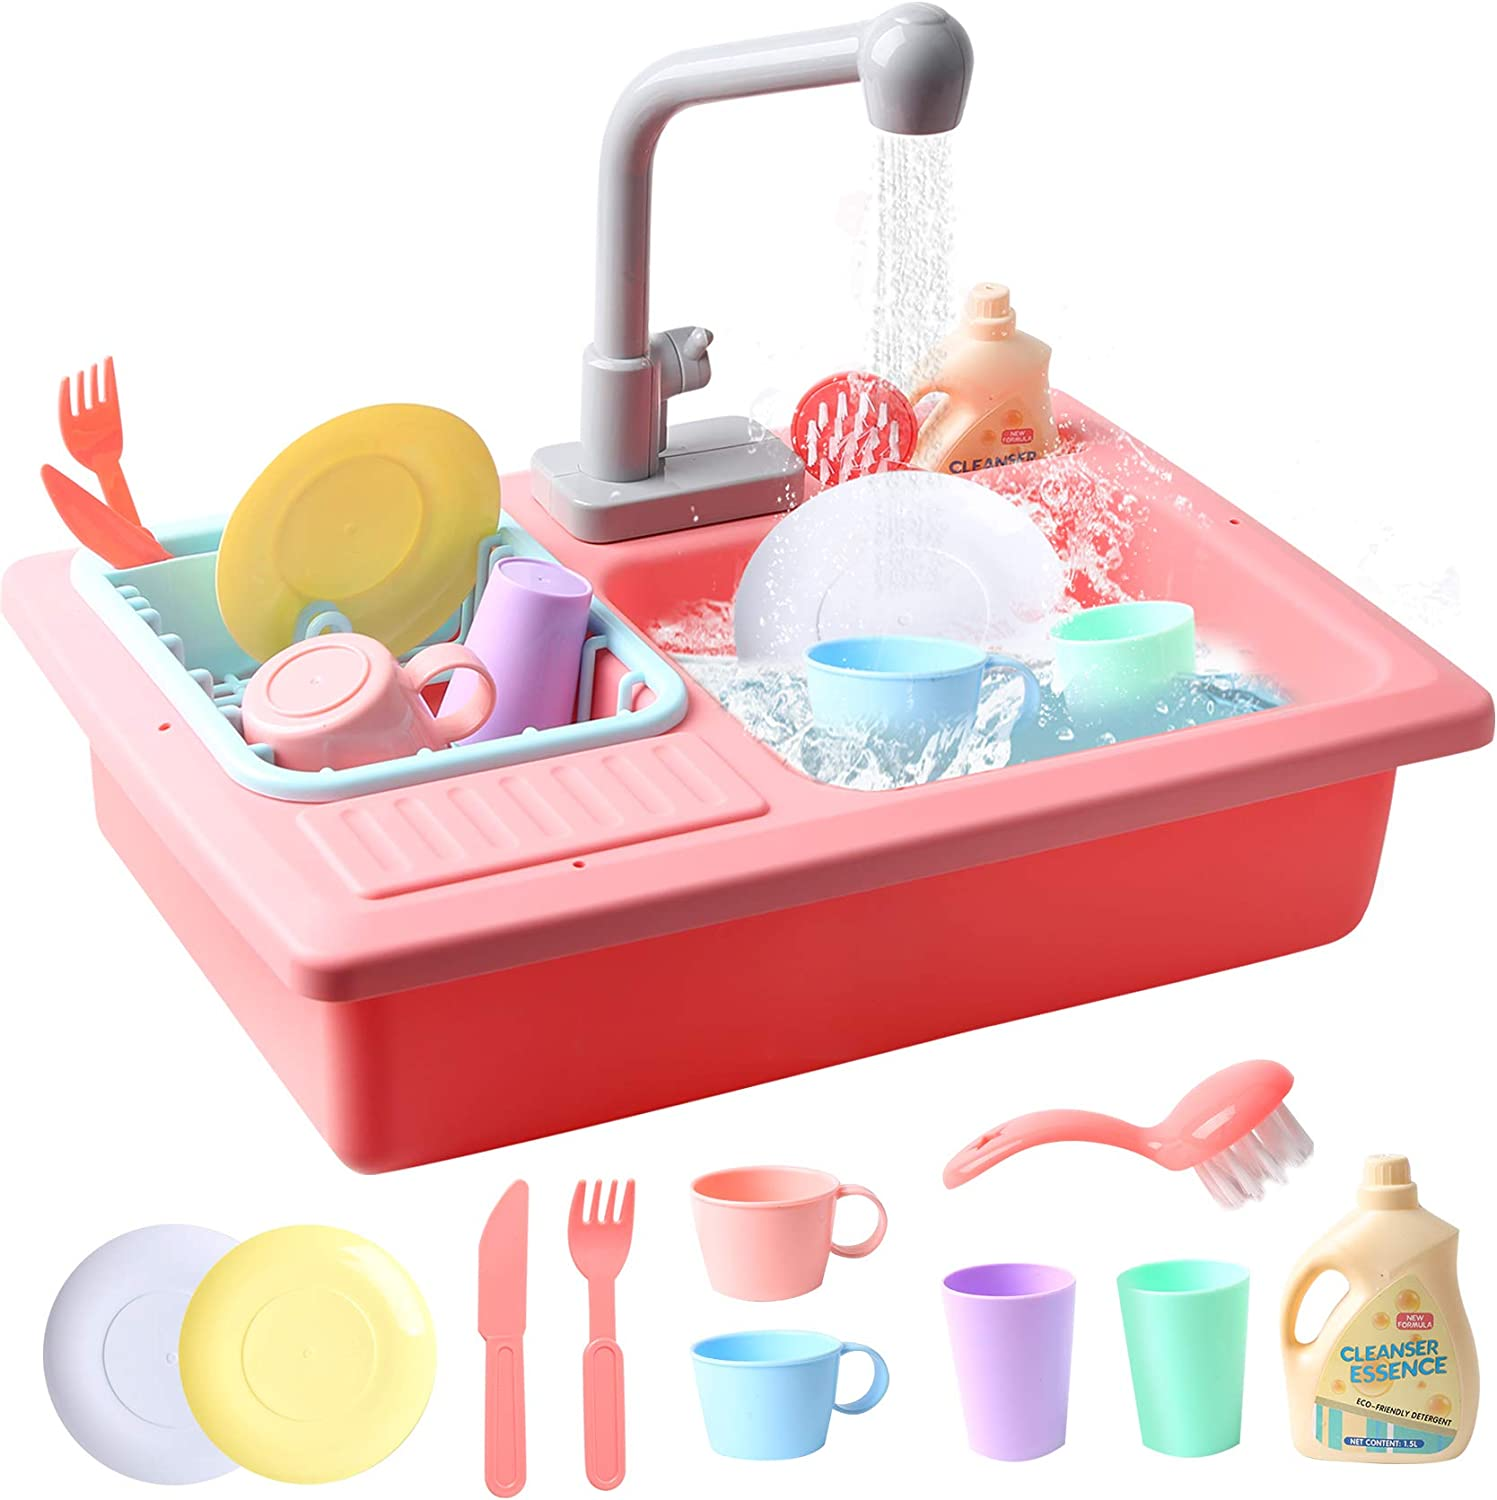 Elf Lab Kitchen Sink Toys Set,Electric Dishwasher Play Sink with Running Water,Kitchenwear Toys,Pretend Play House Toys Accessories,Kitchen Accessory Set for Toddlers Kids Boys and Girls Pink